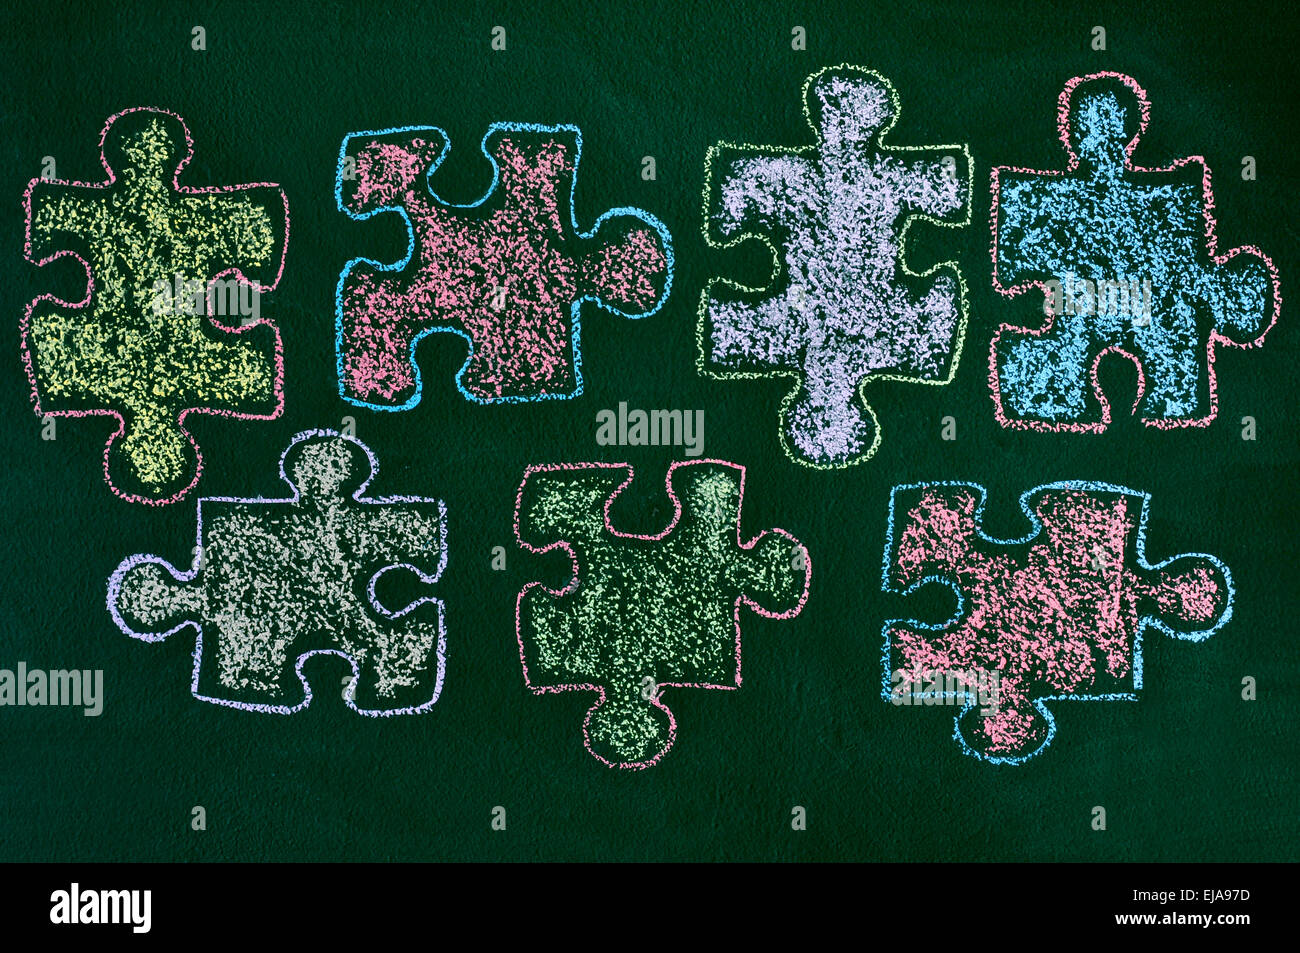 Some Puzzle Pieces Drawn With Chalk Of Different Colors On A Green